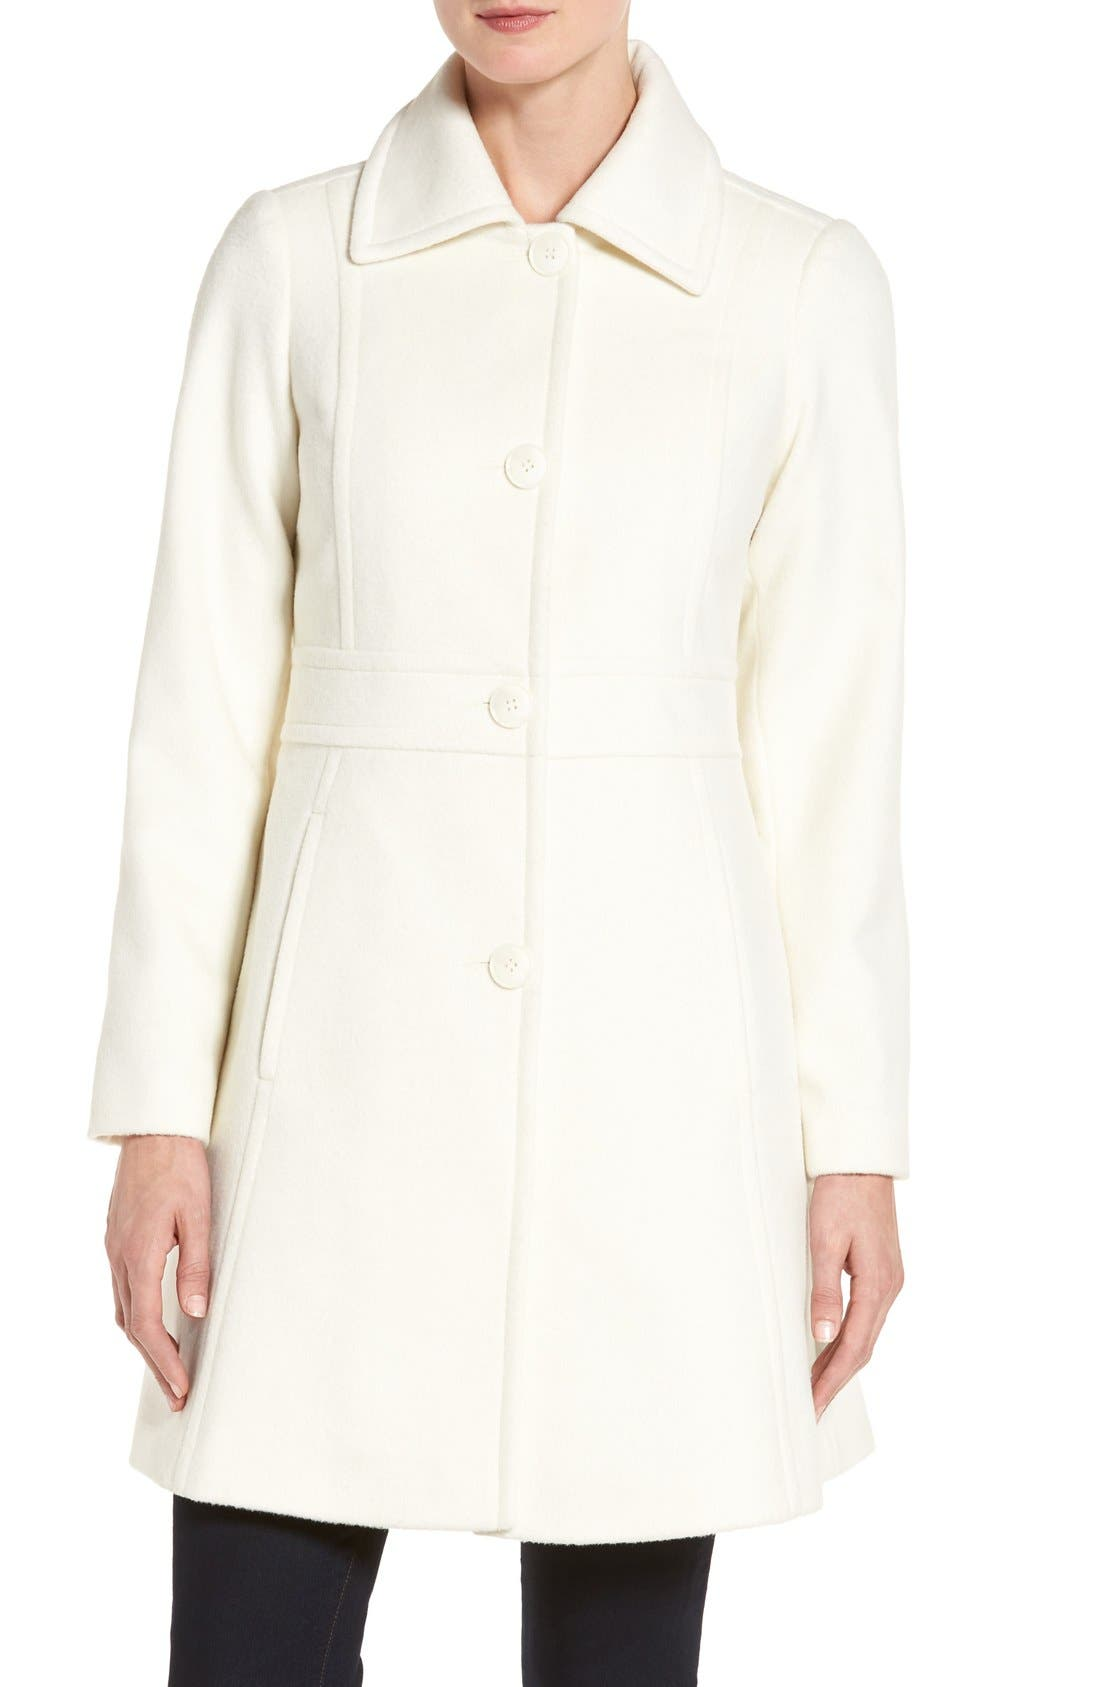 Wool Blend Walking Coat,                             Alternate thumbnail 5, color,                             Winter White